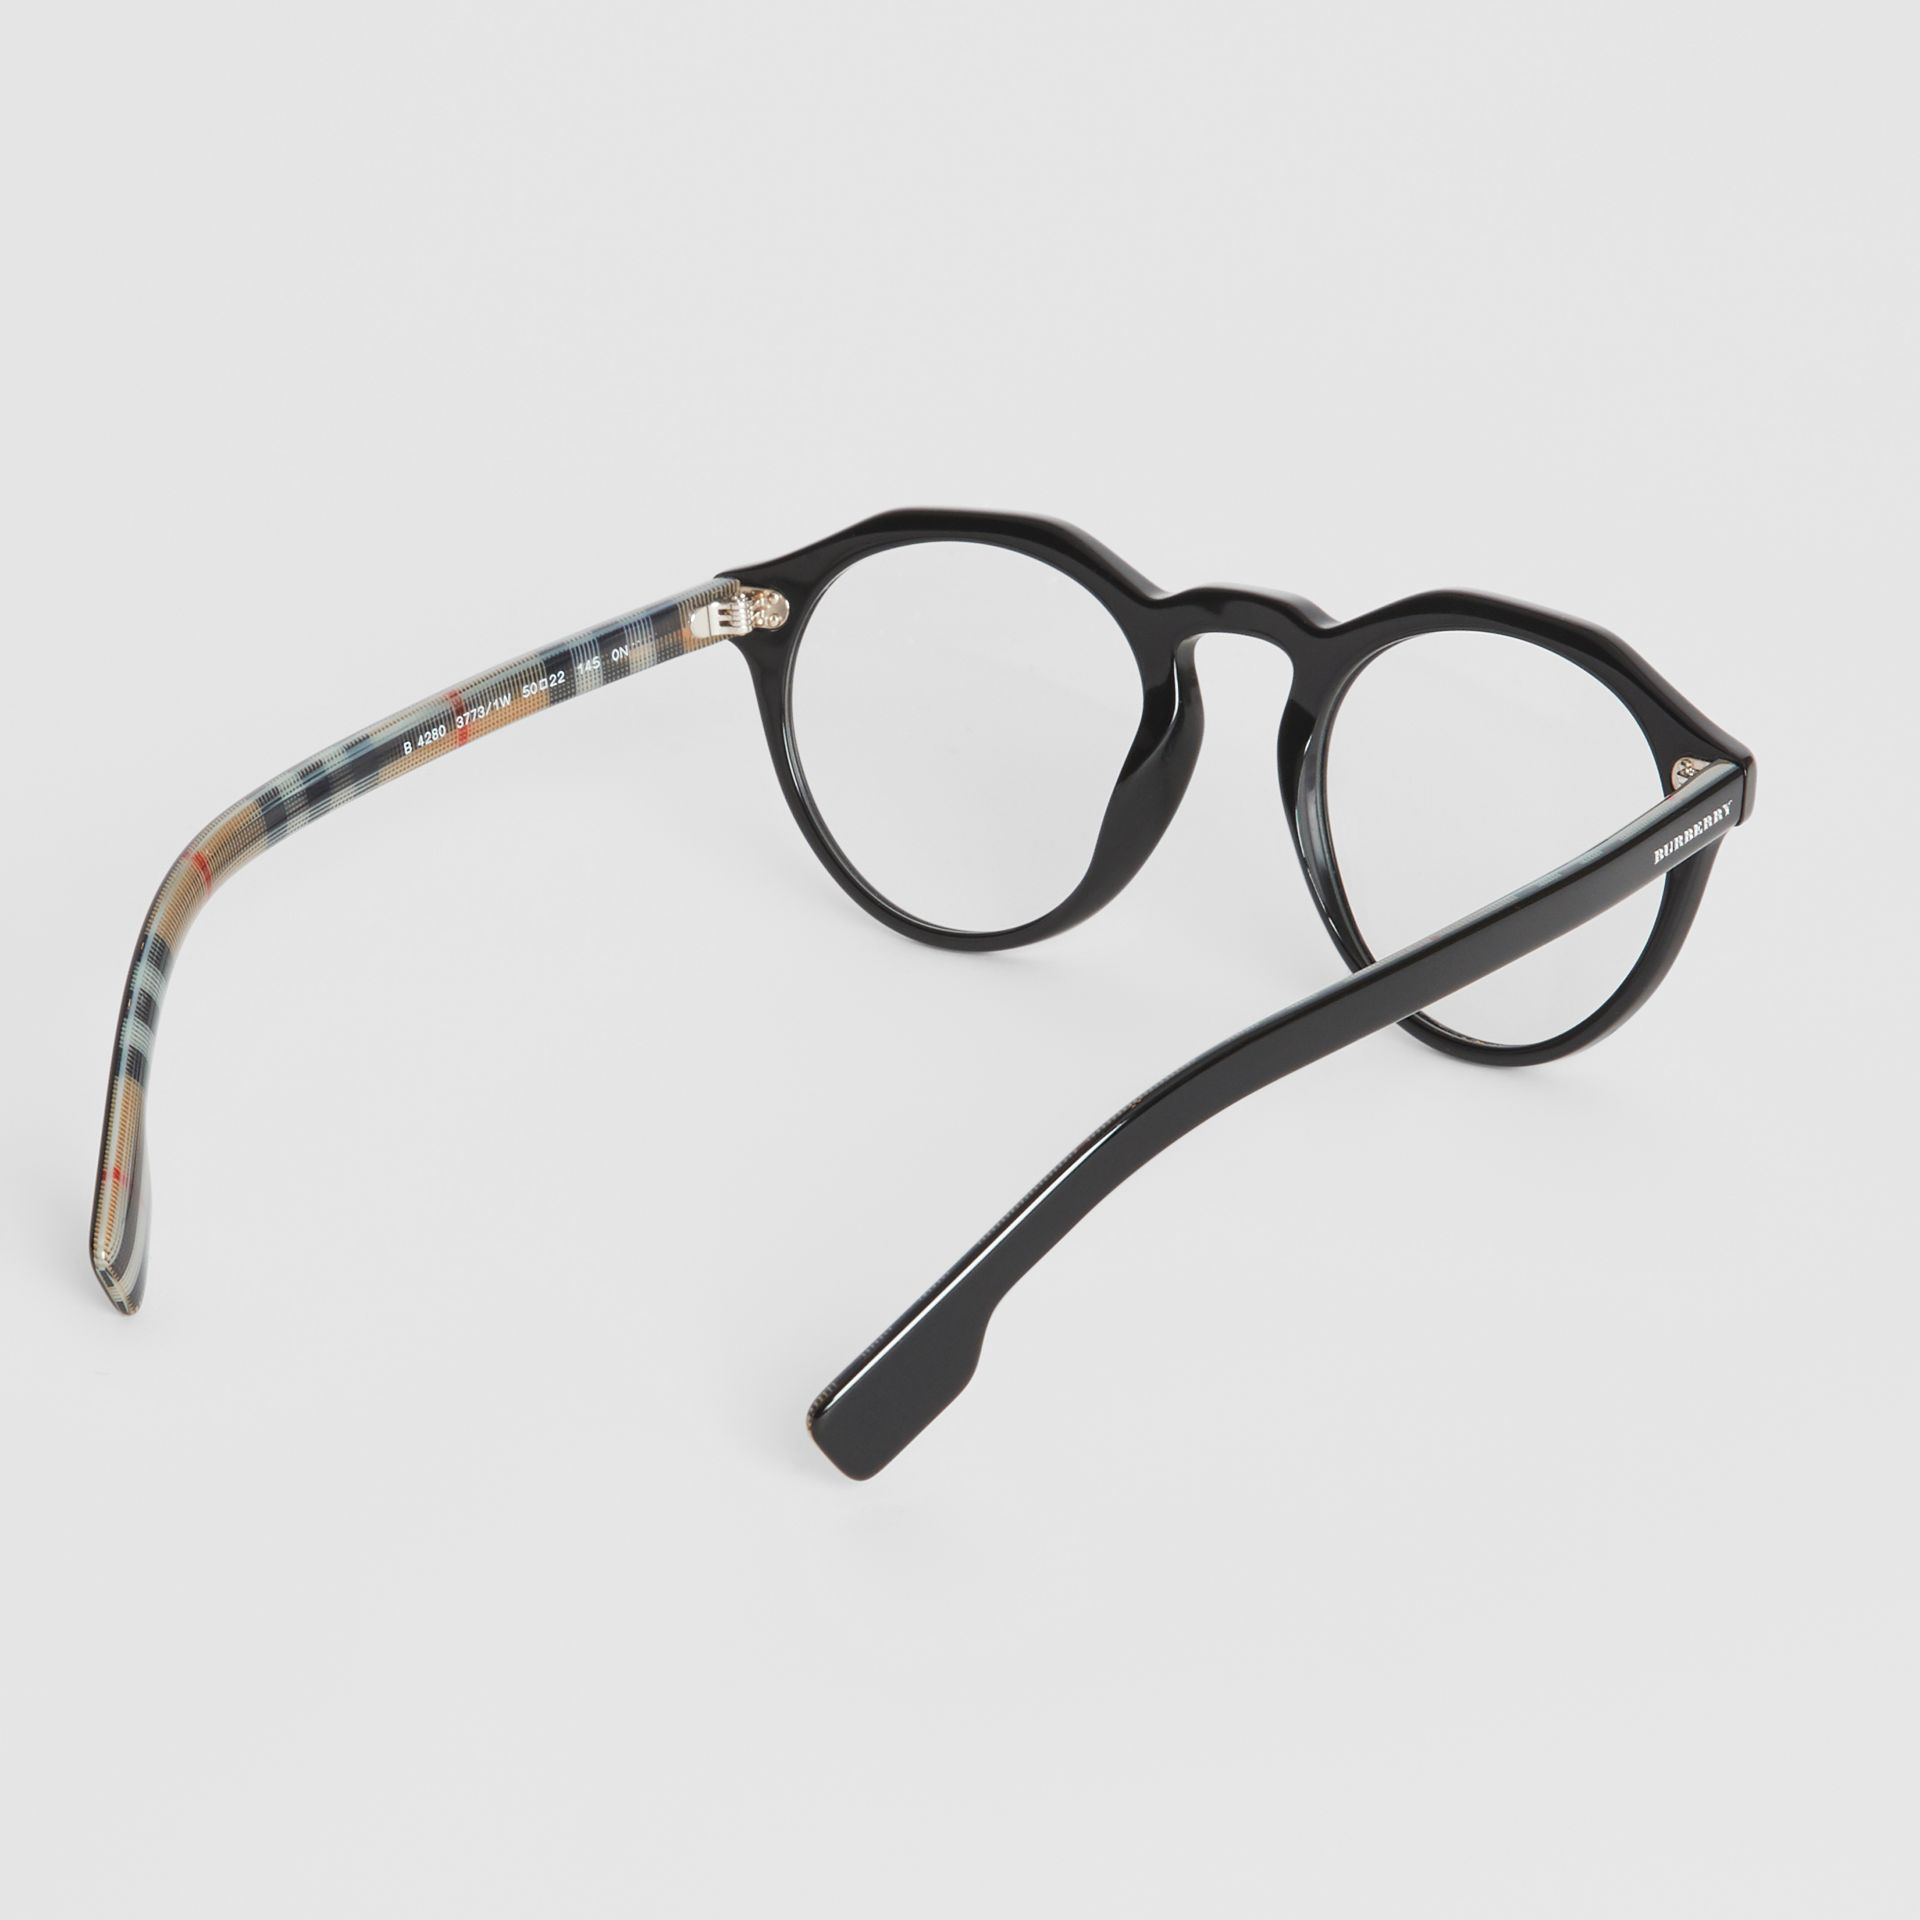 Vintage Check Detail Keyhole Round Optical Frames in Black - Men | Burberry Australia - gallery image 4